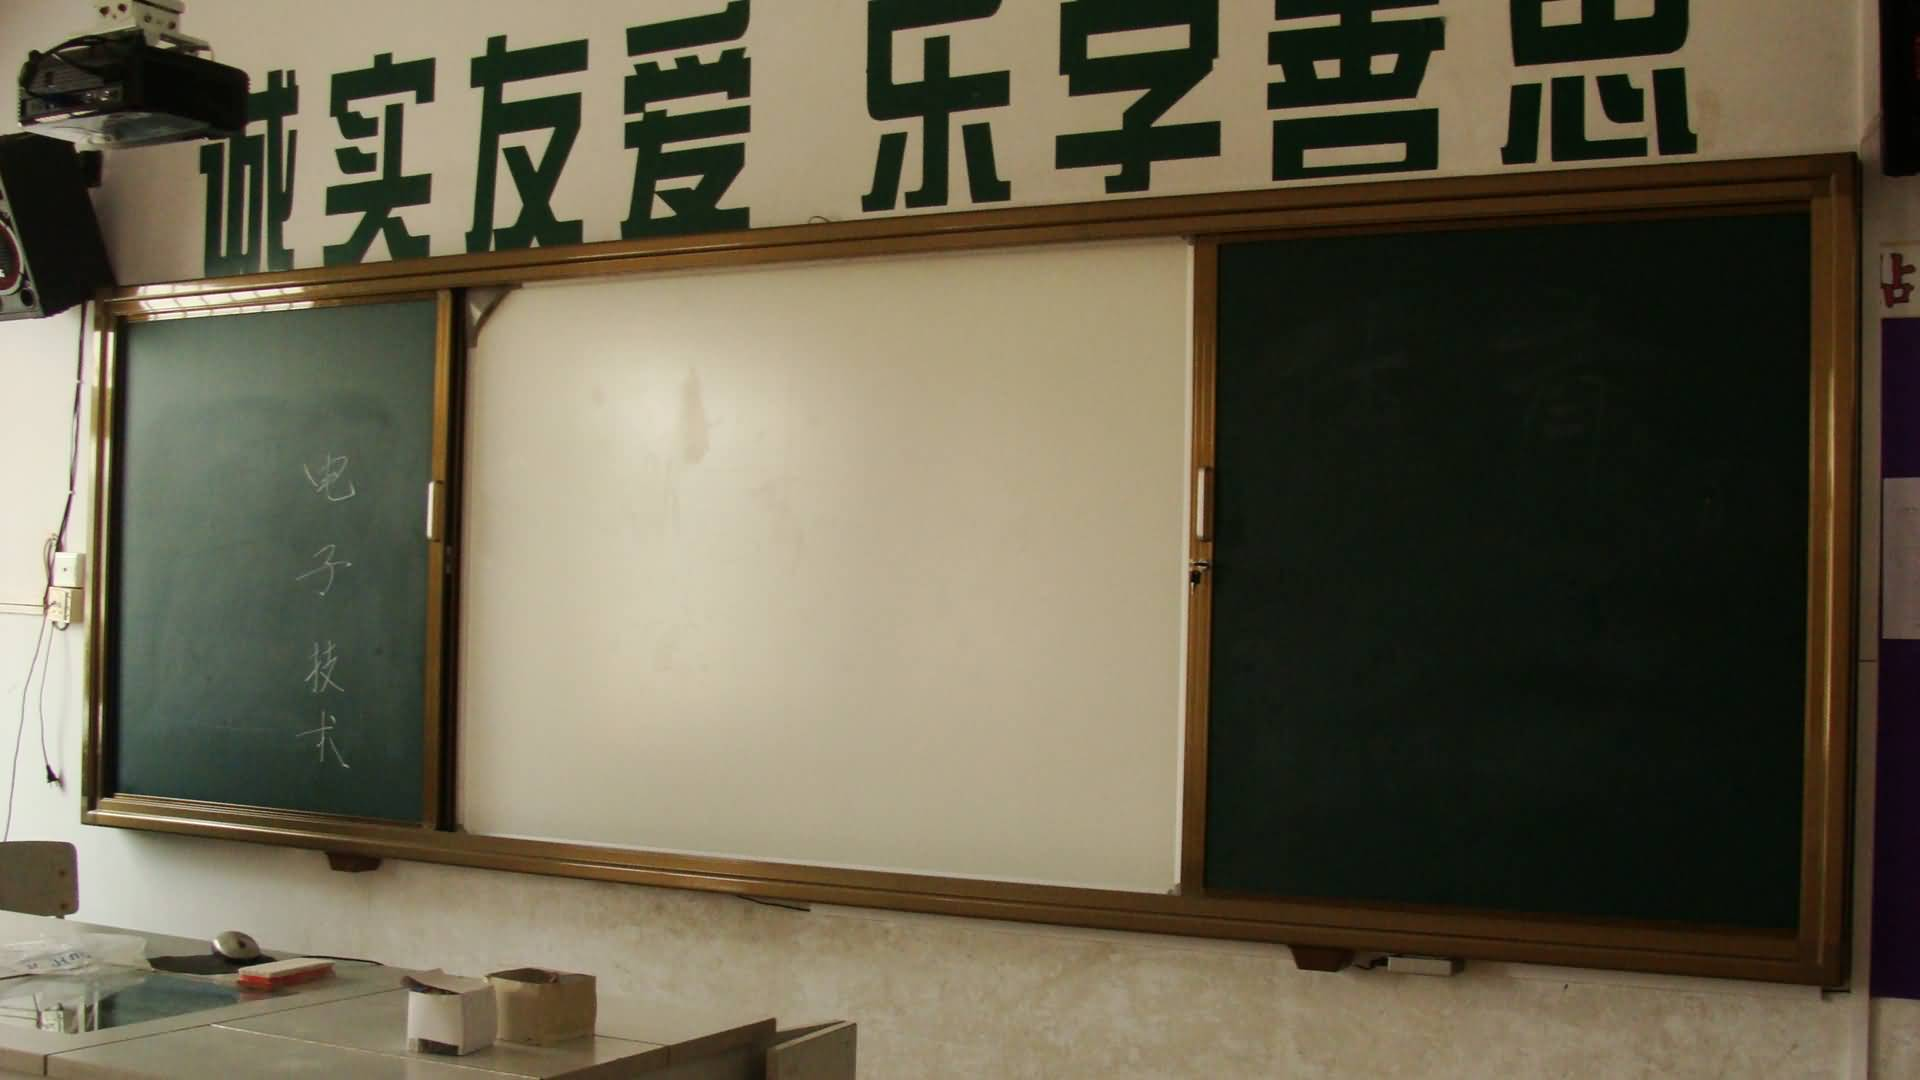 sliding board,versatile white board,combination whiteboard,writing board